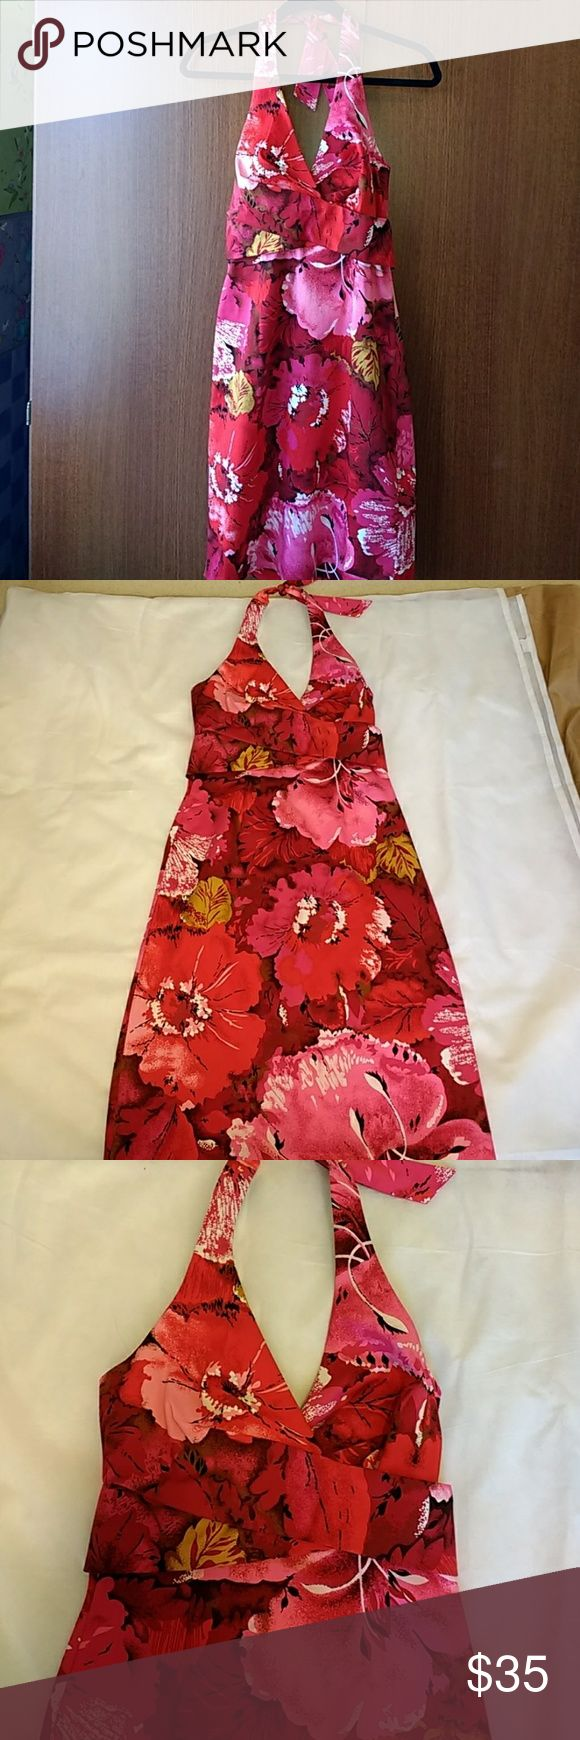 Beautiful Donna Ricco Floral Print Halter Dress. Beautiful Donna Ricco Floral Print Halter Dress perfect for summers. As shown in the picture, slight pulling near the zip. It can easily be repaired, not noticeable. Donna Ricco Dresses